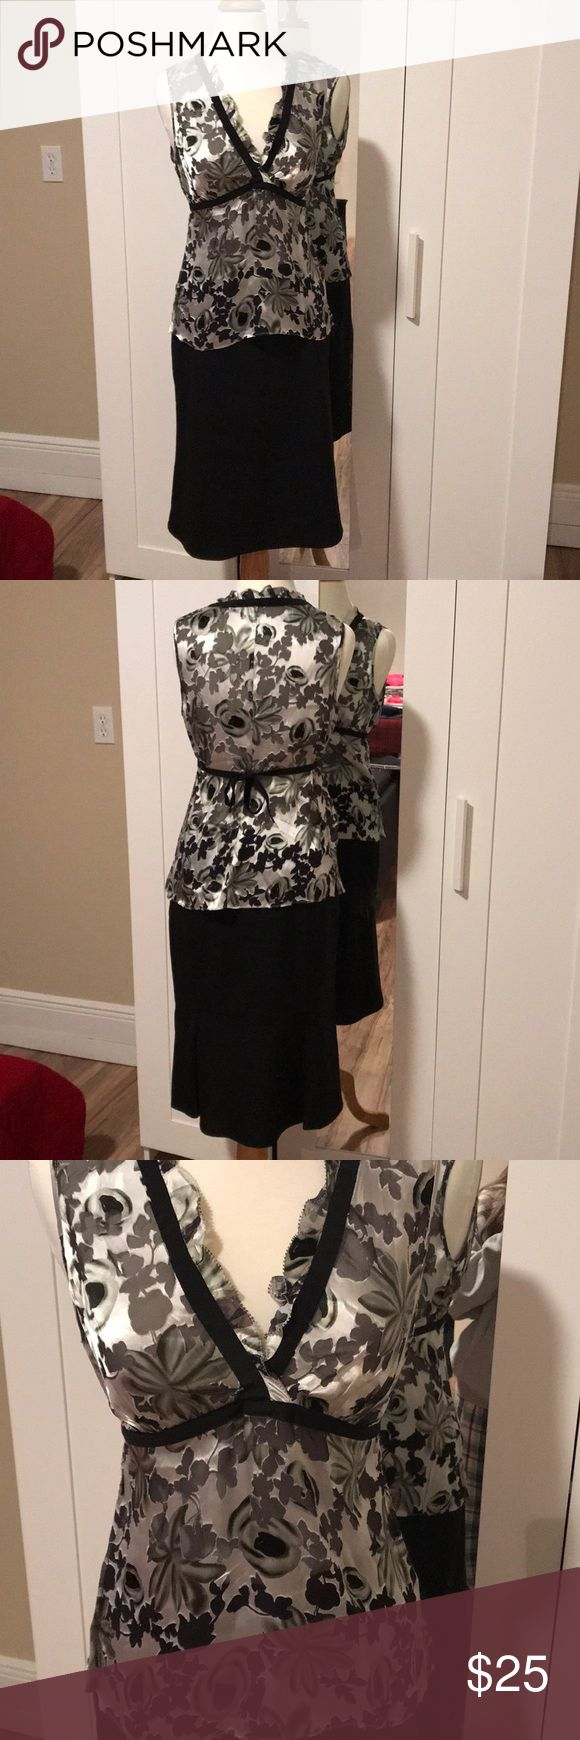 """Banana Republic skirt White House black market top This comes as an outfit! Size small top super cute silk design Skirt 24"""" length black banana republic size 4 Both are dry clean only Banana Republic Skirts Midi"""